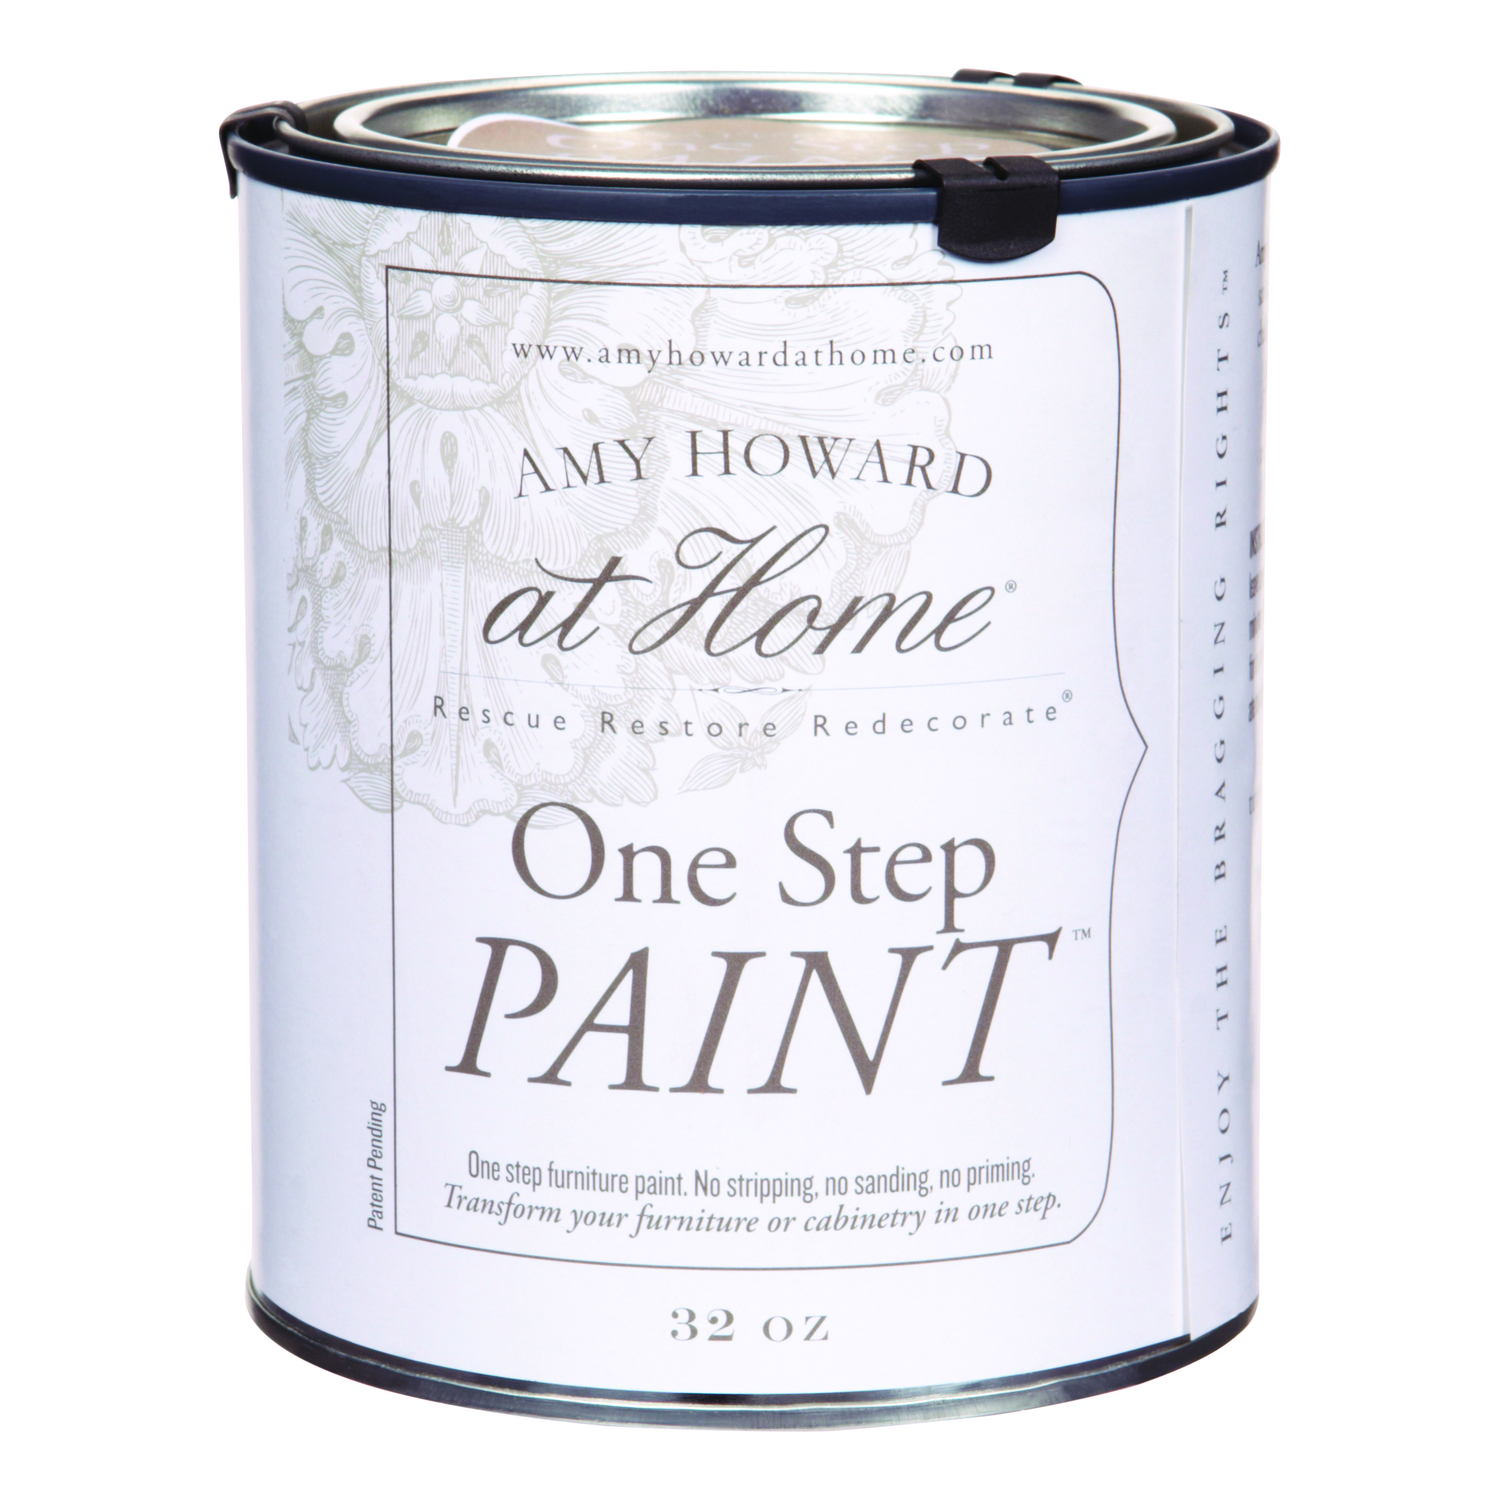 Amy Howard at Home  Flat Chalky Finish  Kembel  32 oz. One Step Paint  Latex